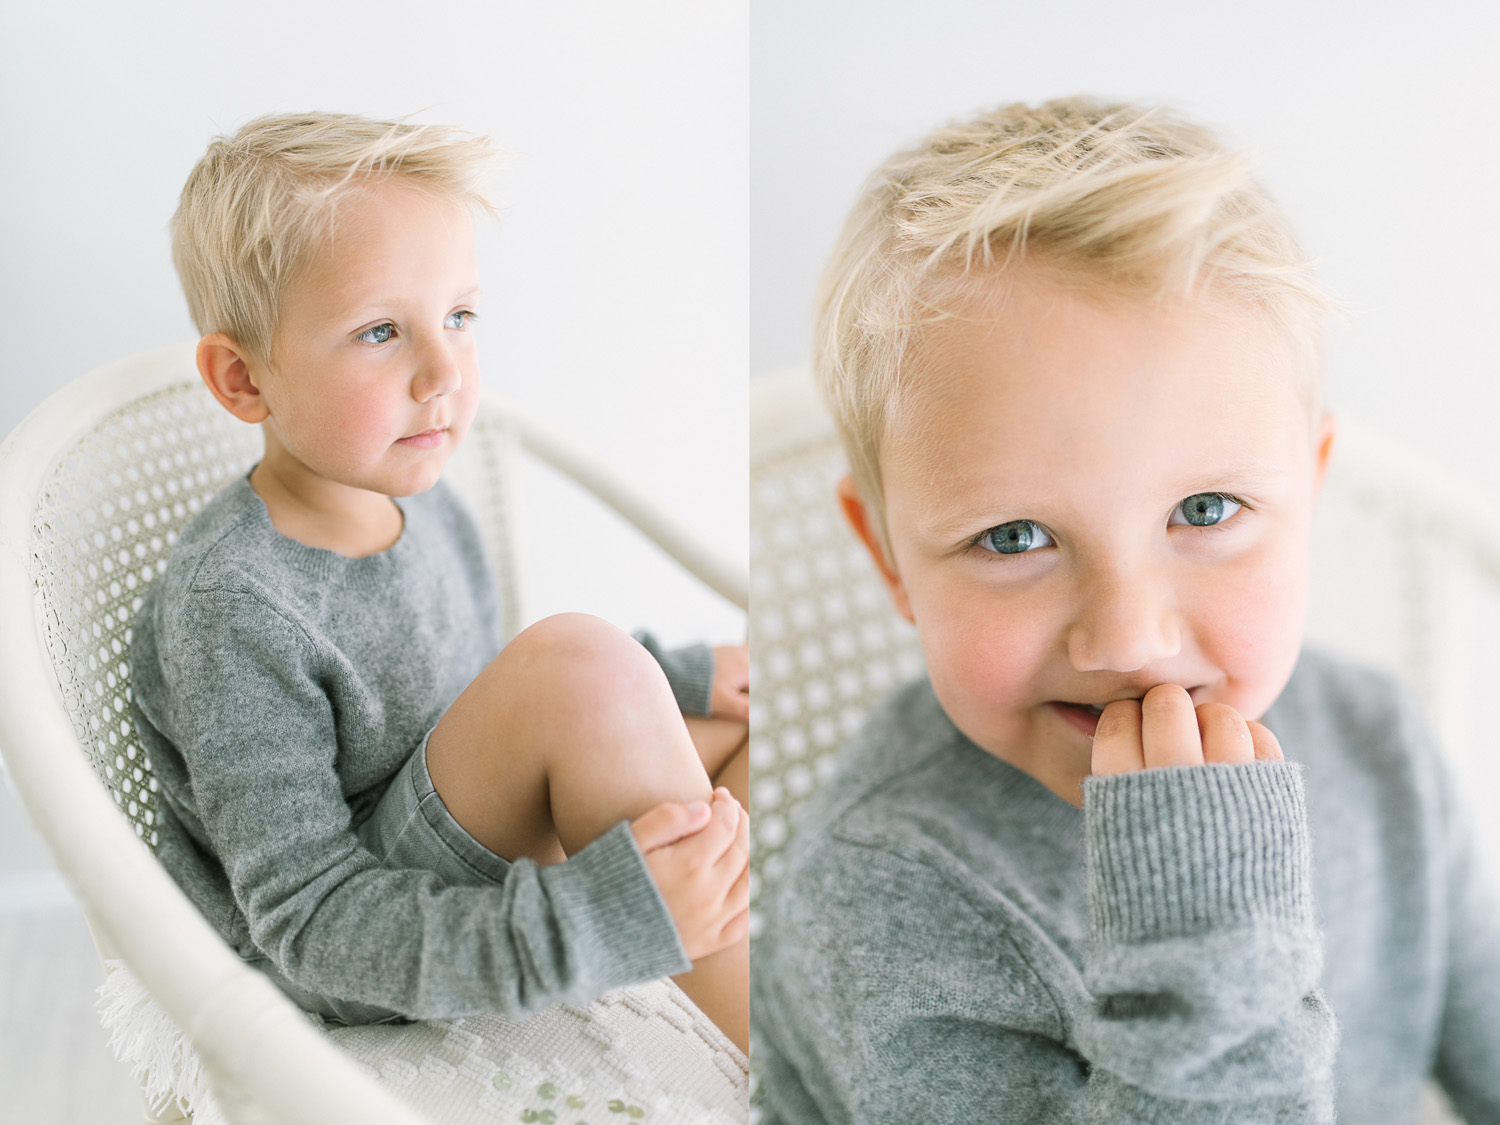 Two images side by side of young blond haired boy sitting on white cane chair looking out window and biting fingernails during children's photography session in Sutherland Shire Baby and children's photography Studio in Sutherland Shire Sydney